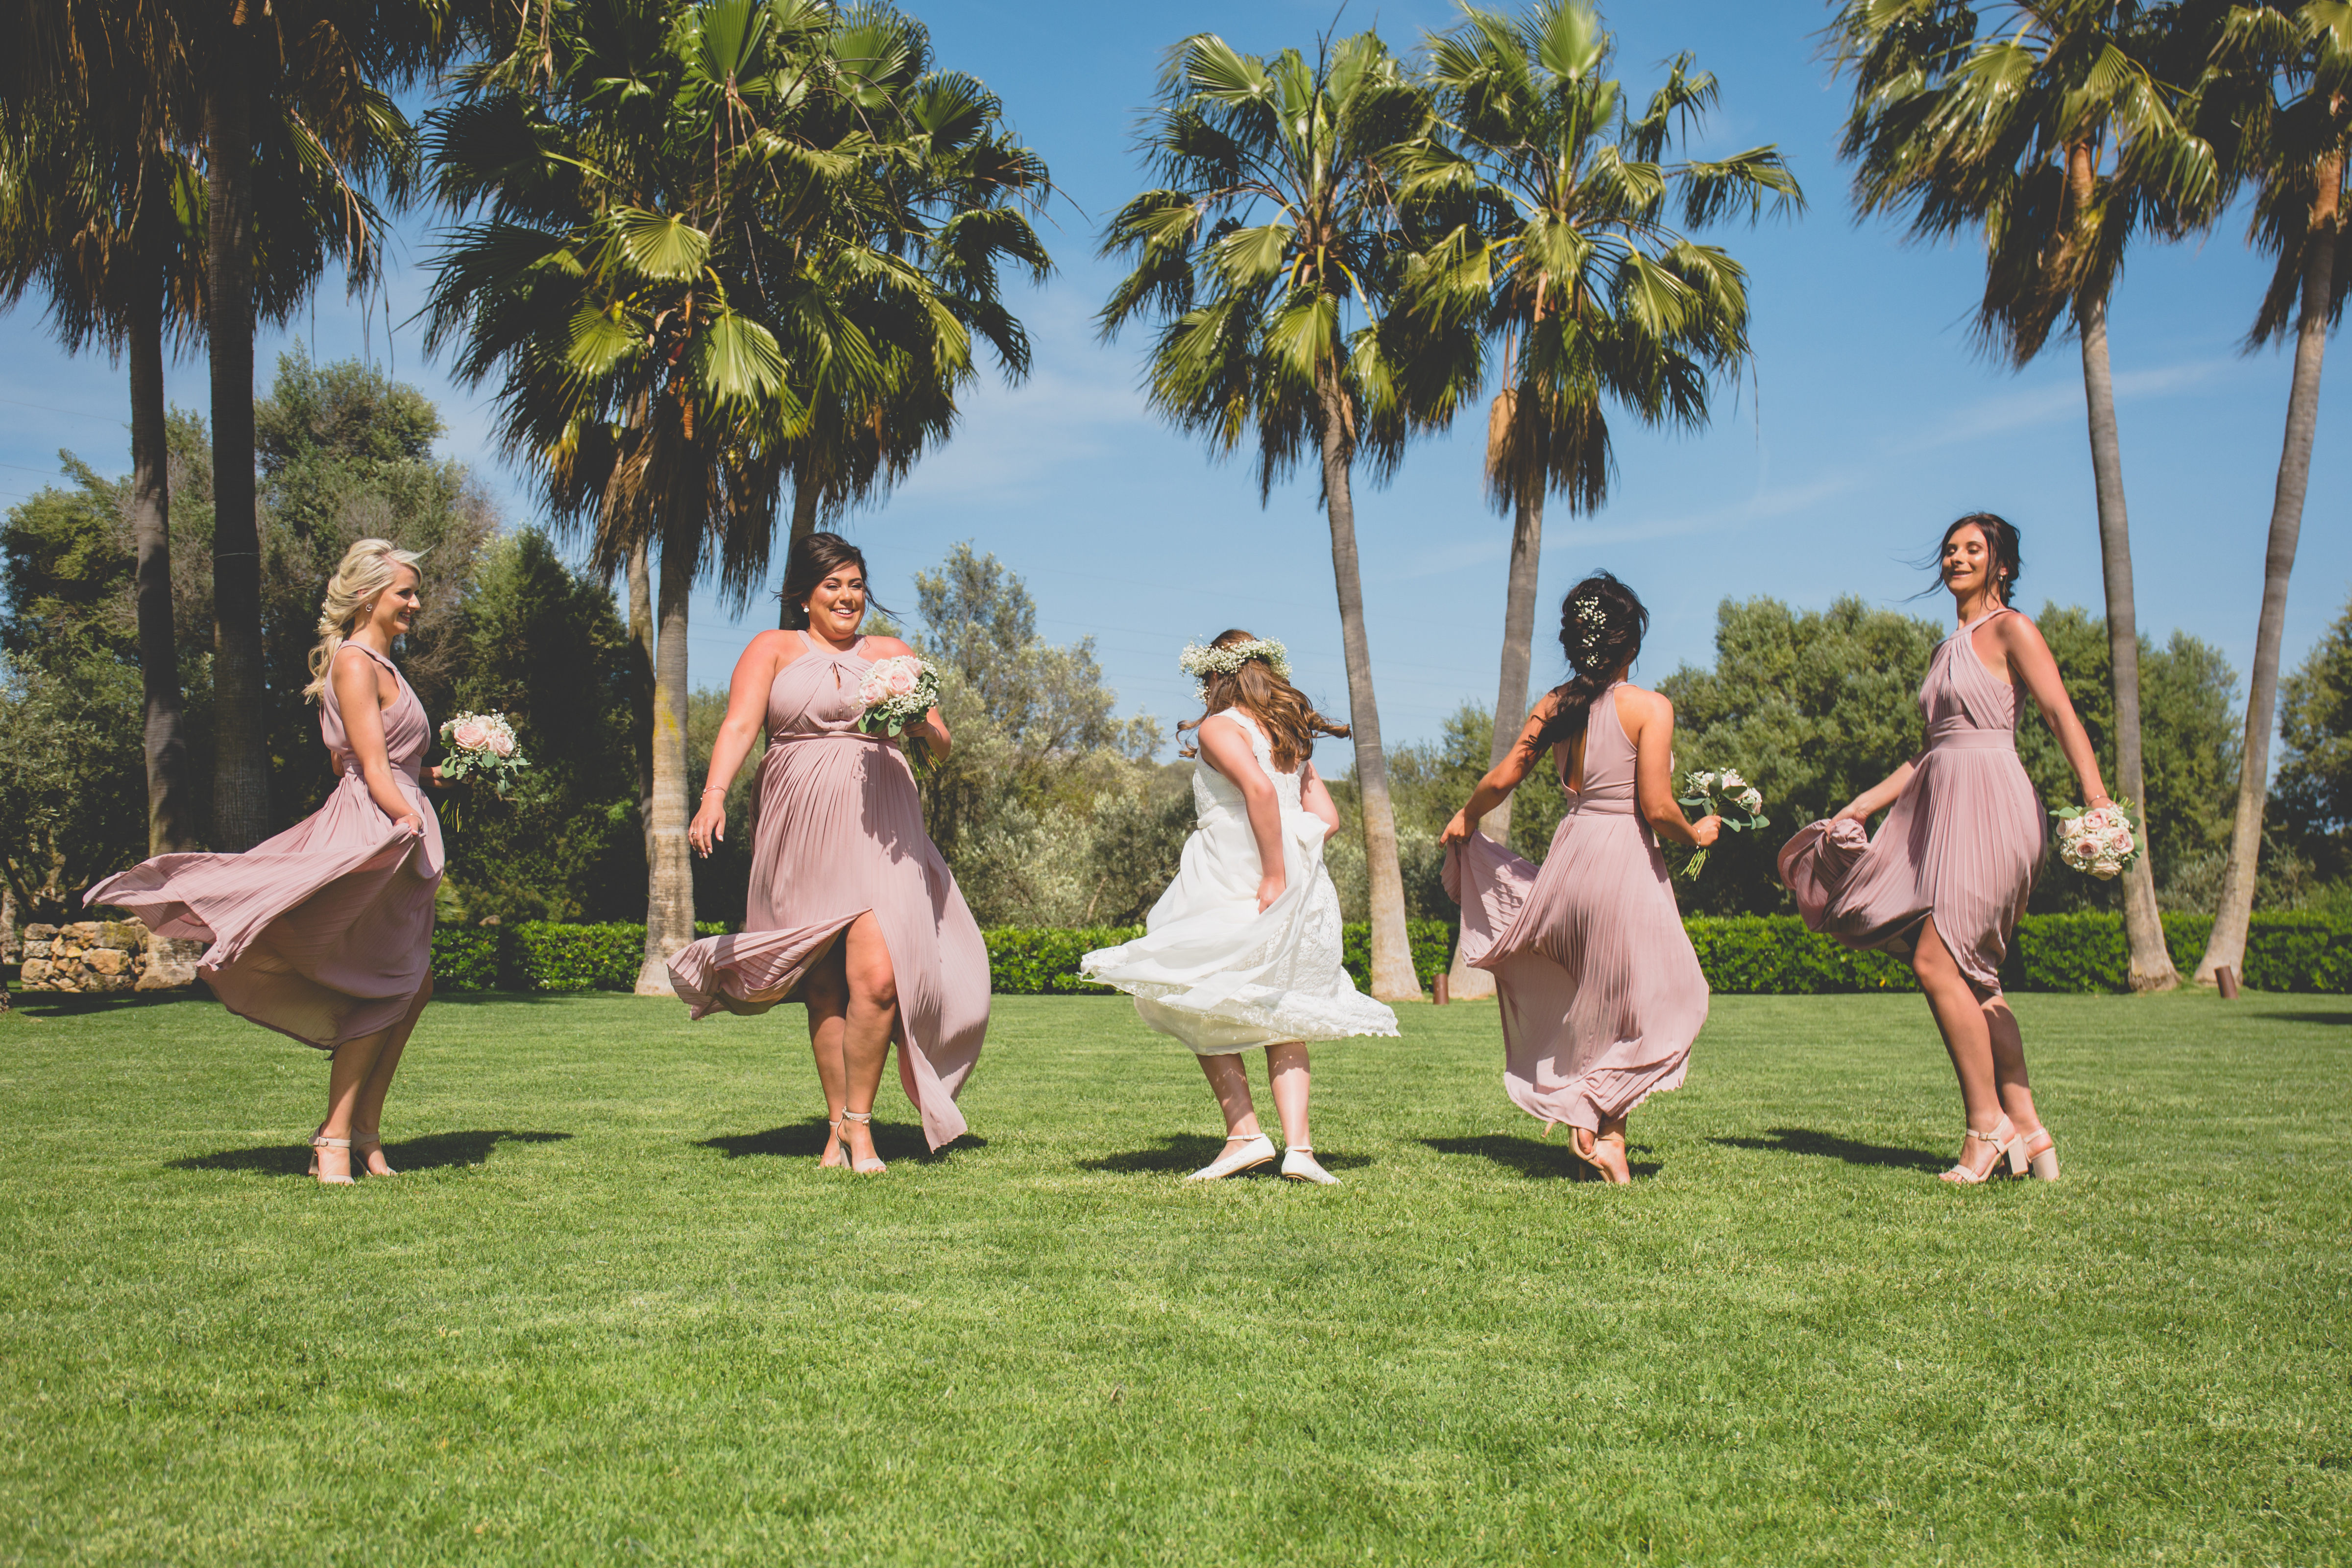 The bridesmaids in the grounds of the Finca